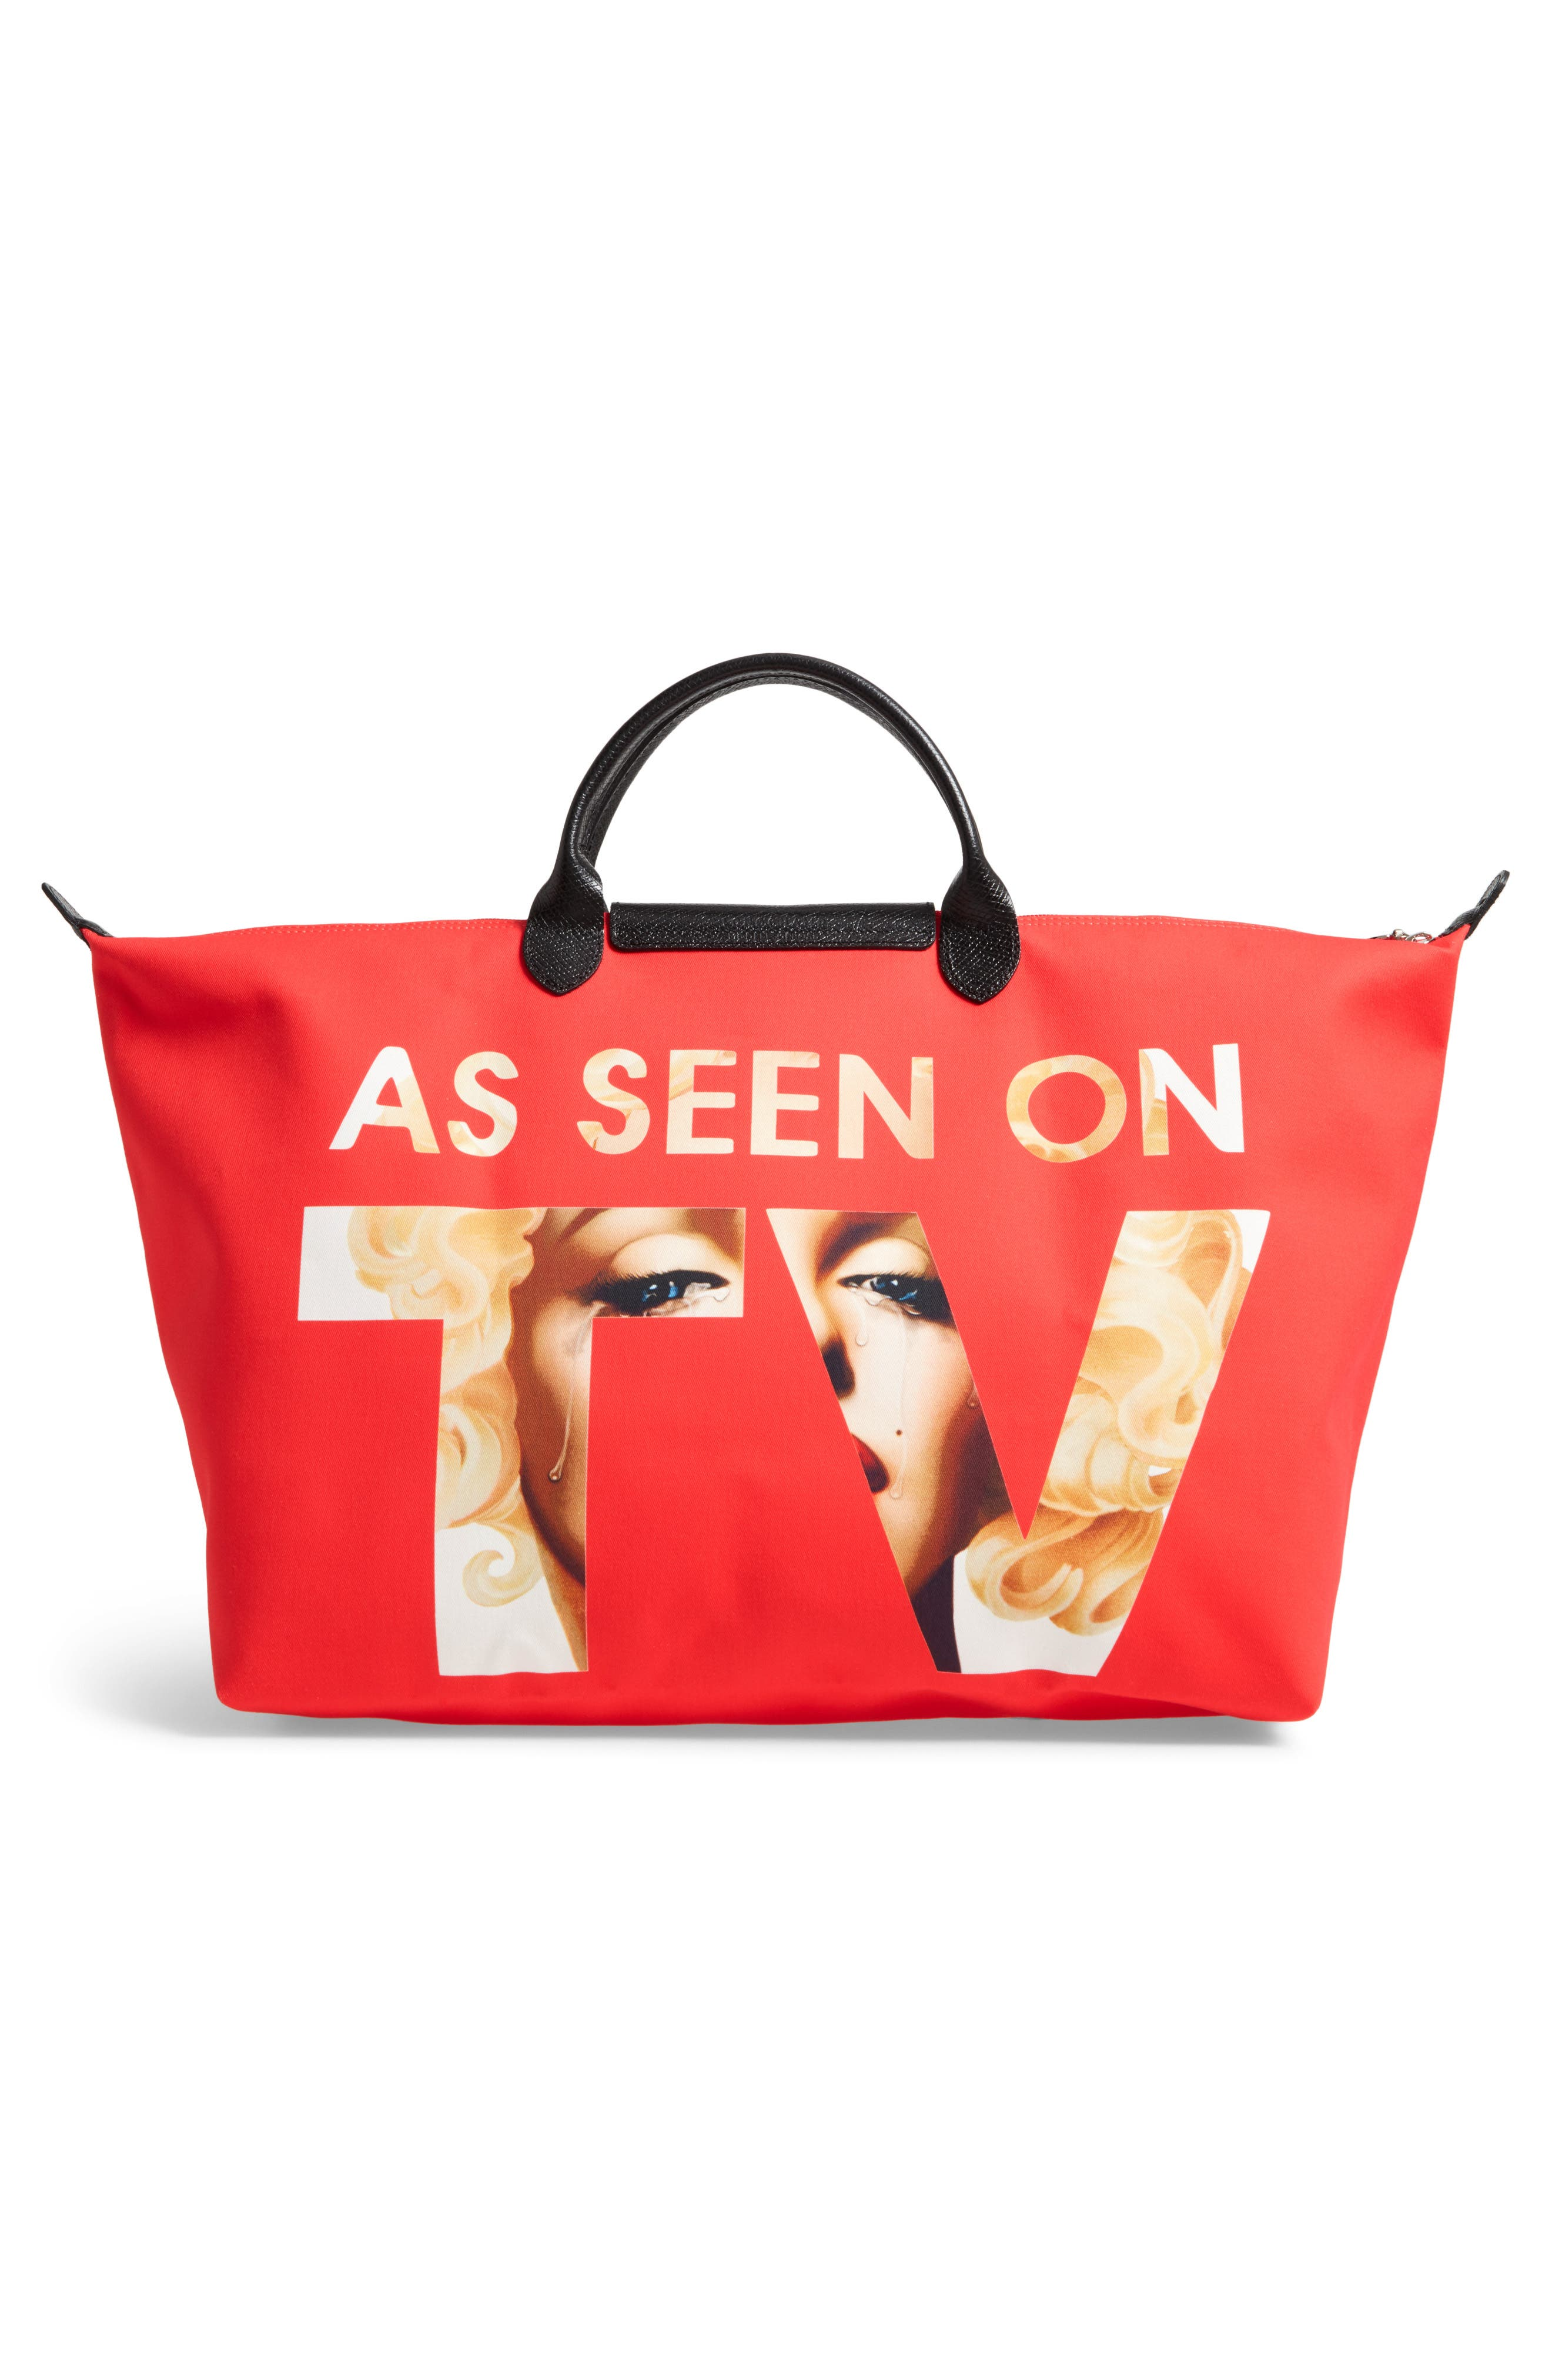 x Jeremy Scott As Seen on TV Tote,                             Alternate thumbnail 3, color,